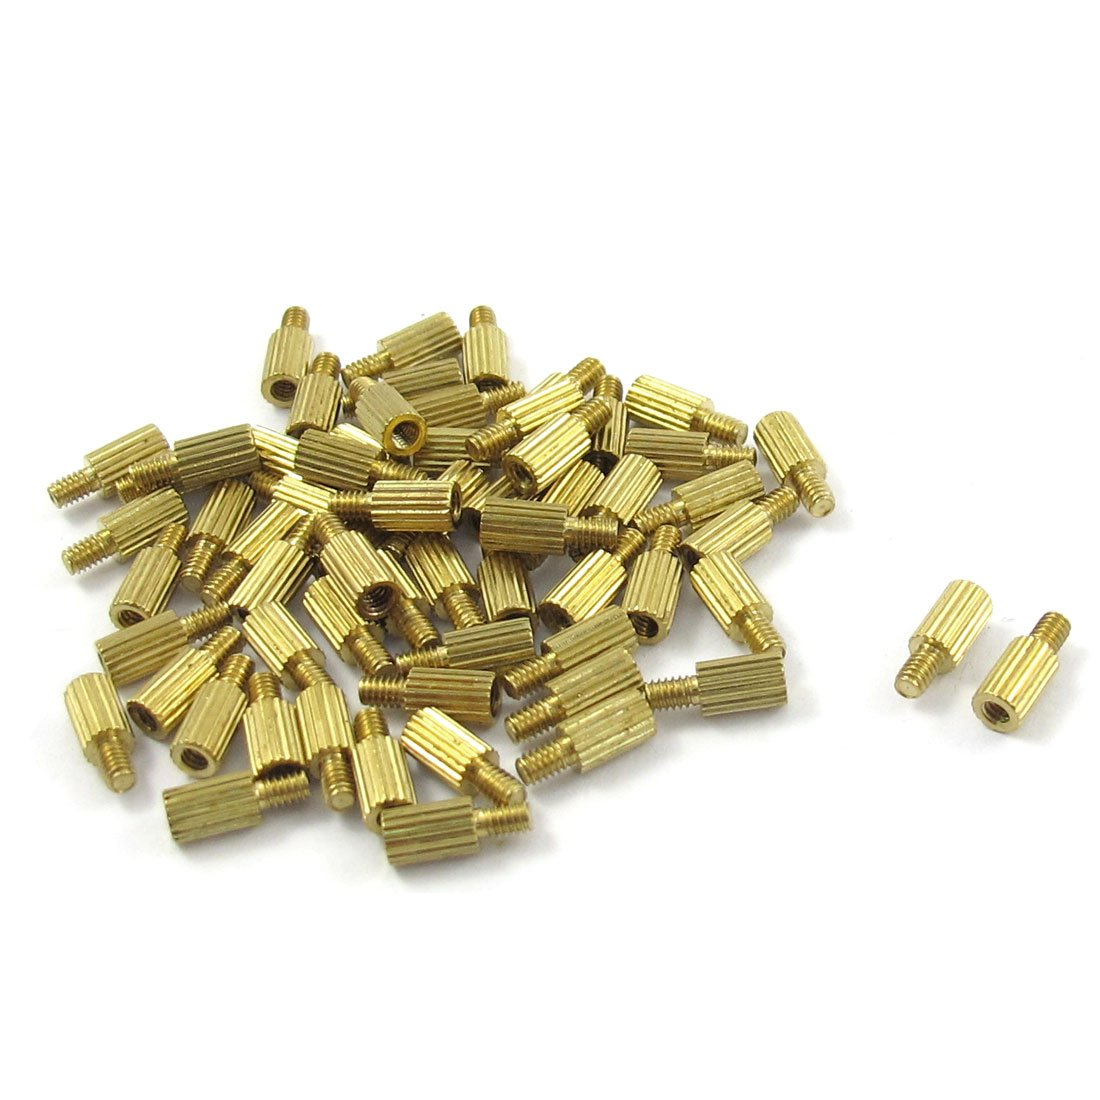 MYLB 50 Pcs Male to Female Thread Brass Pillars Standoff Spacer M2x5mmx8mm m2 3 3 1pcs brass standoff 3mm spacer standard male female brass standoffs metric thread column high quality 1 piece sale